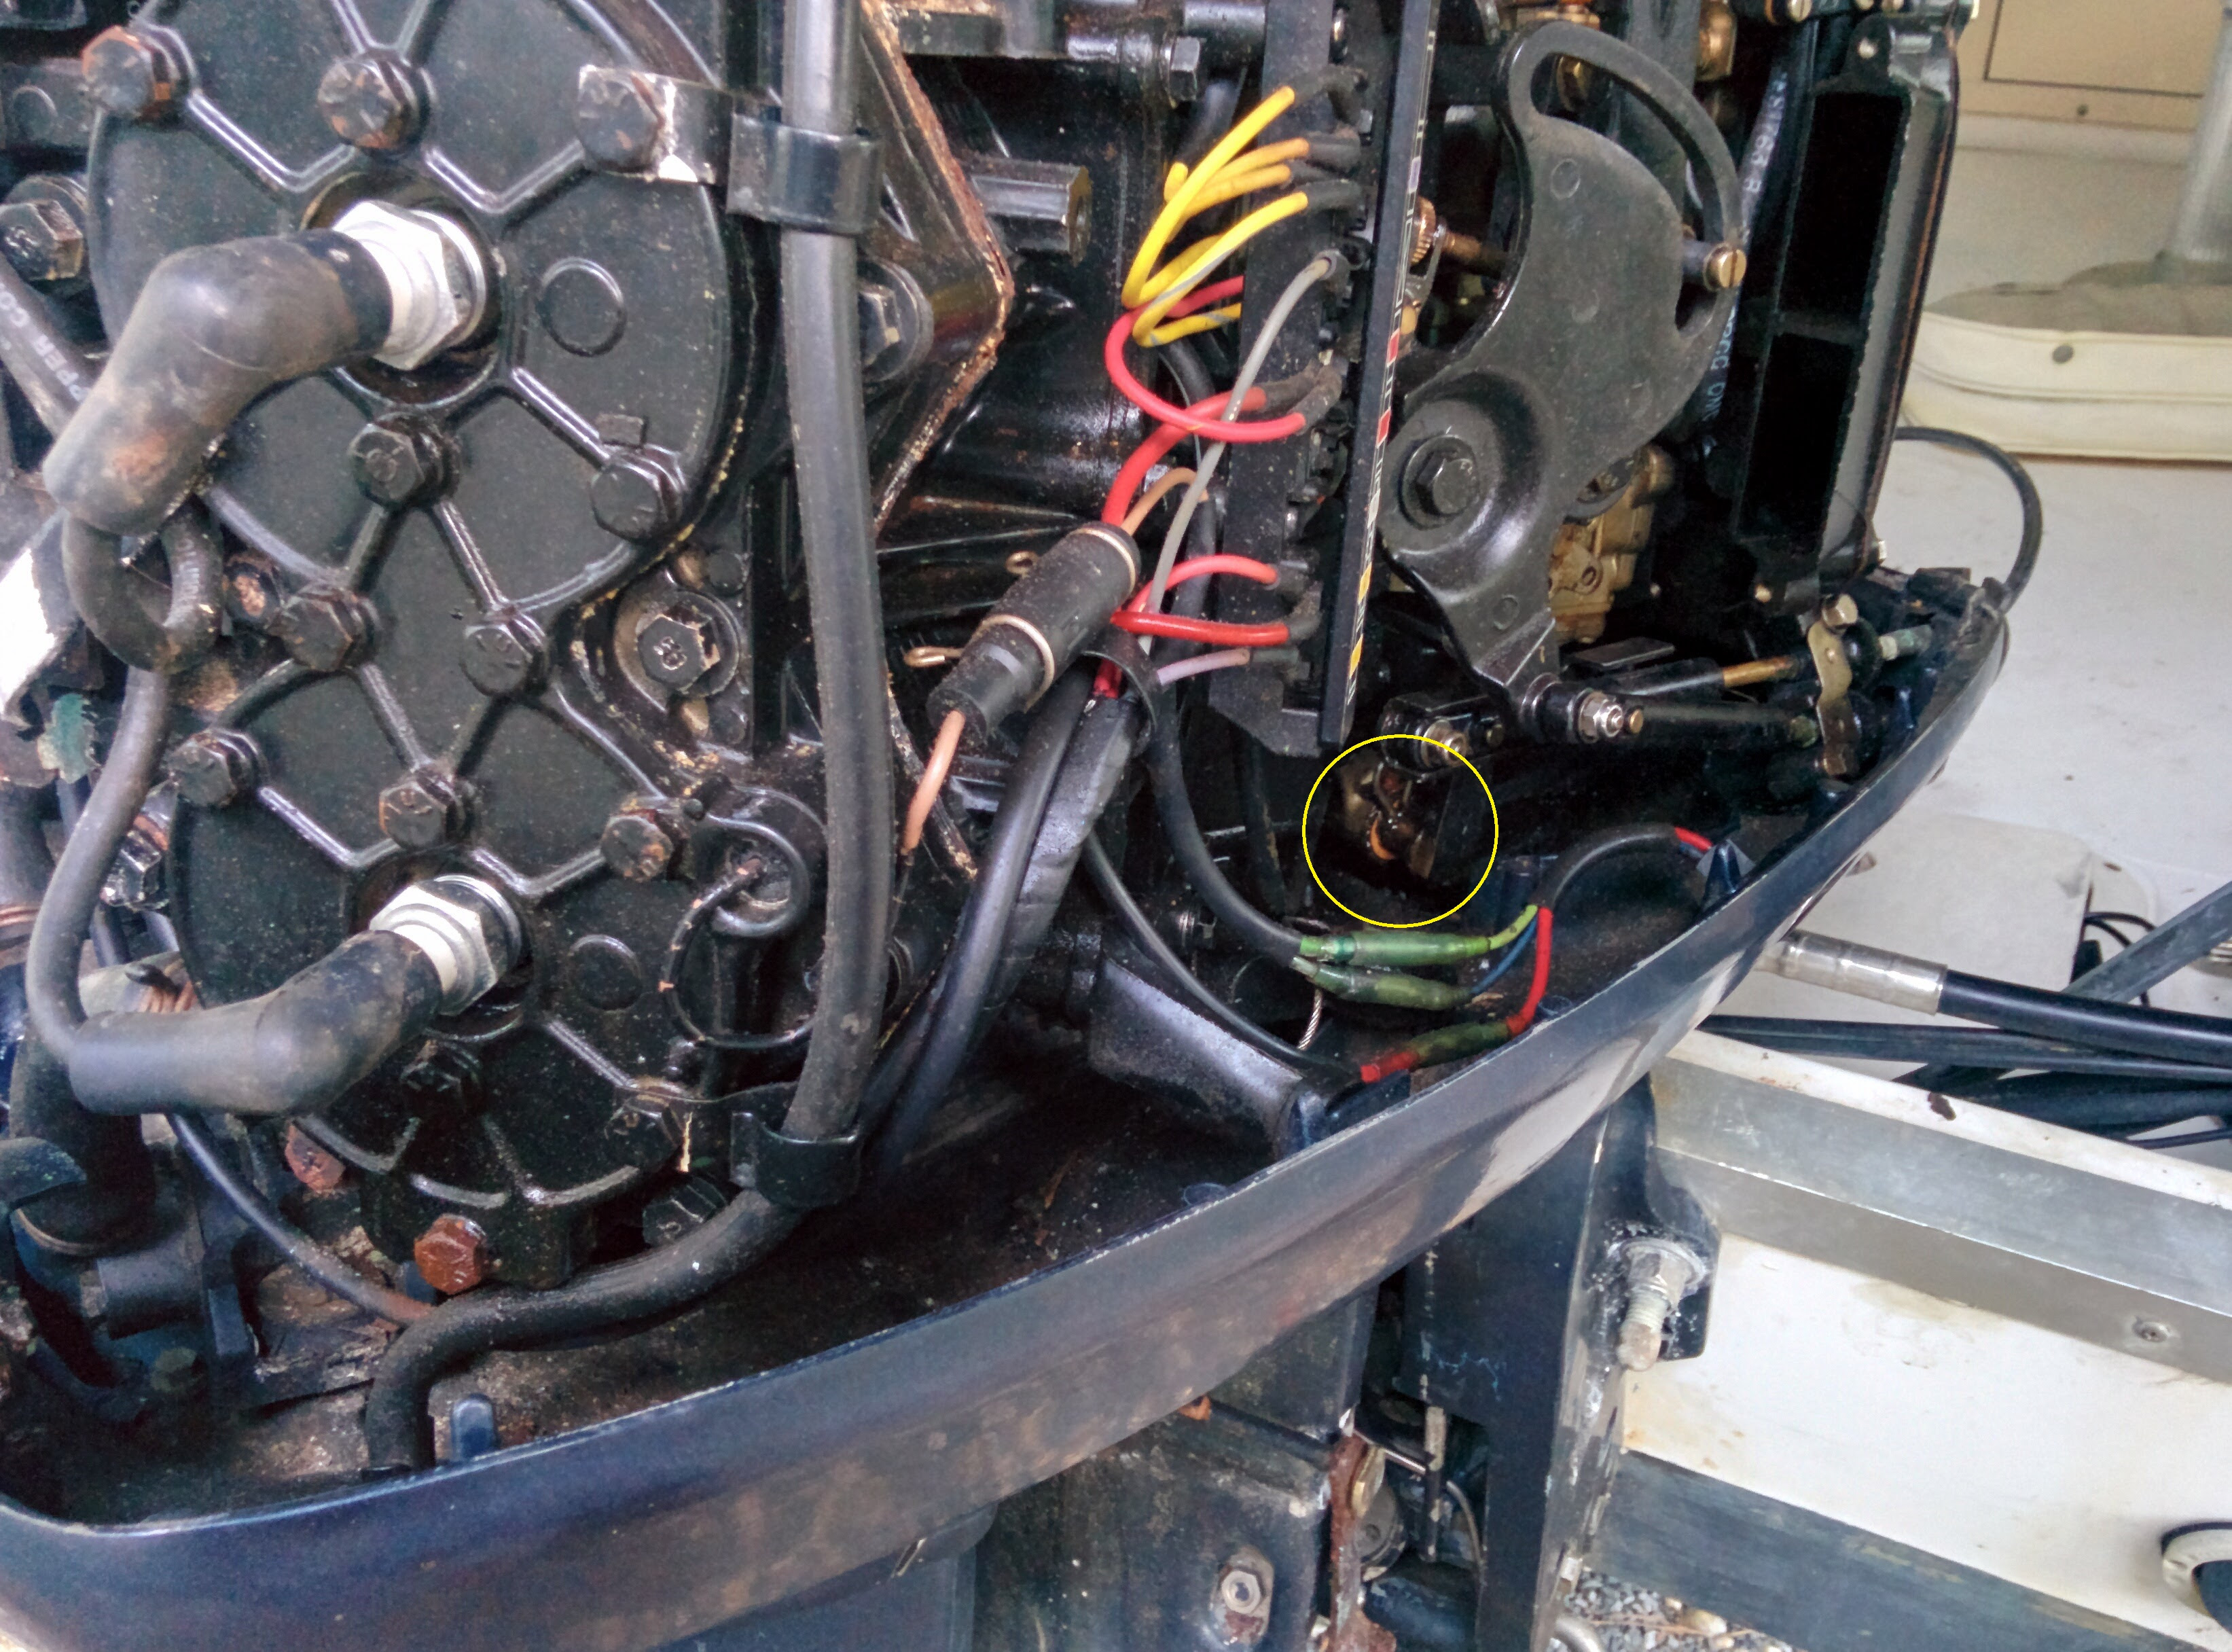 1996 Evinrude 88hp Spl Remove Lower Unit How To Disconnect Shift Rod Pics Boating Forum Iboats Boating Forums